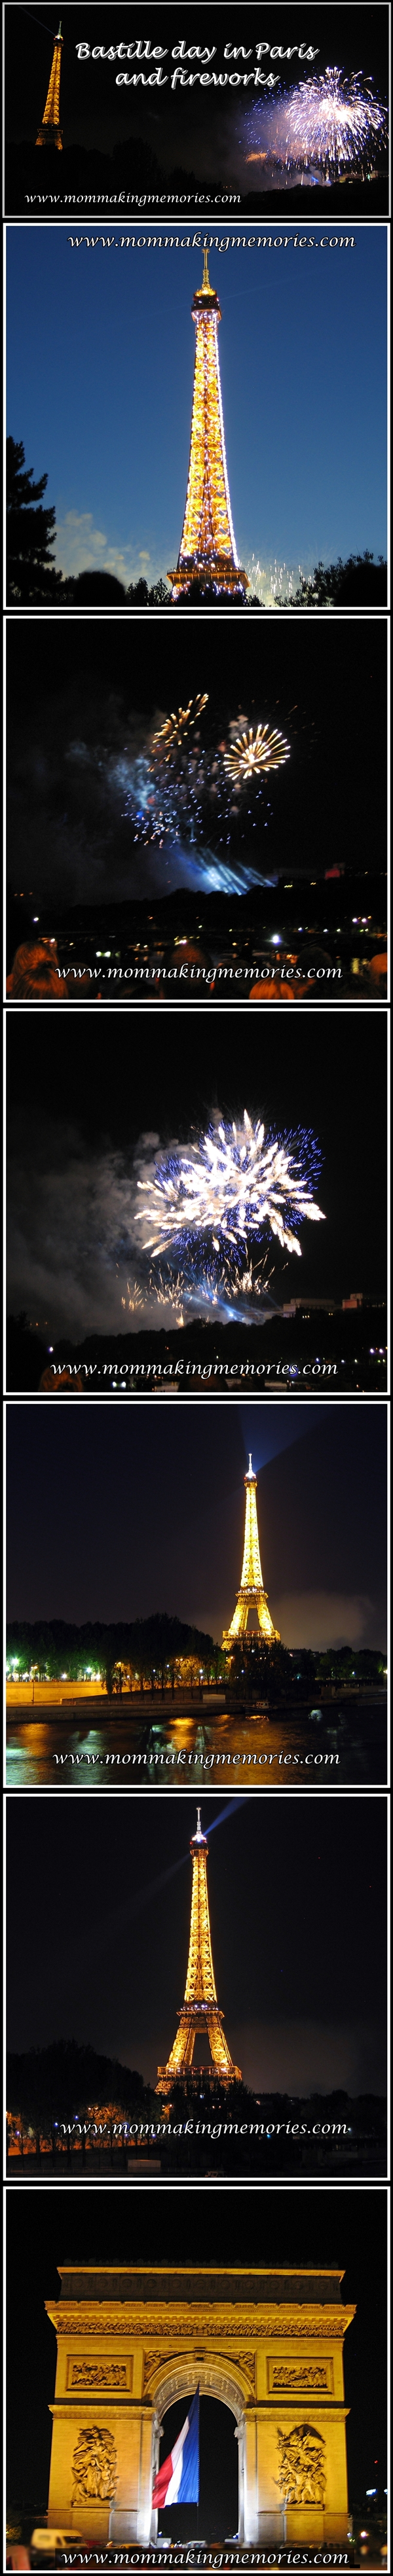 Bastille day in Paris and fireworks at the Eiffel Tower. www.mommakingmemories.com